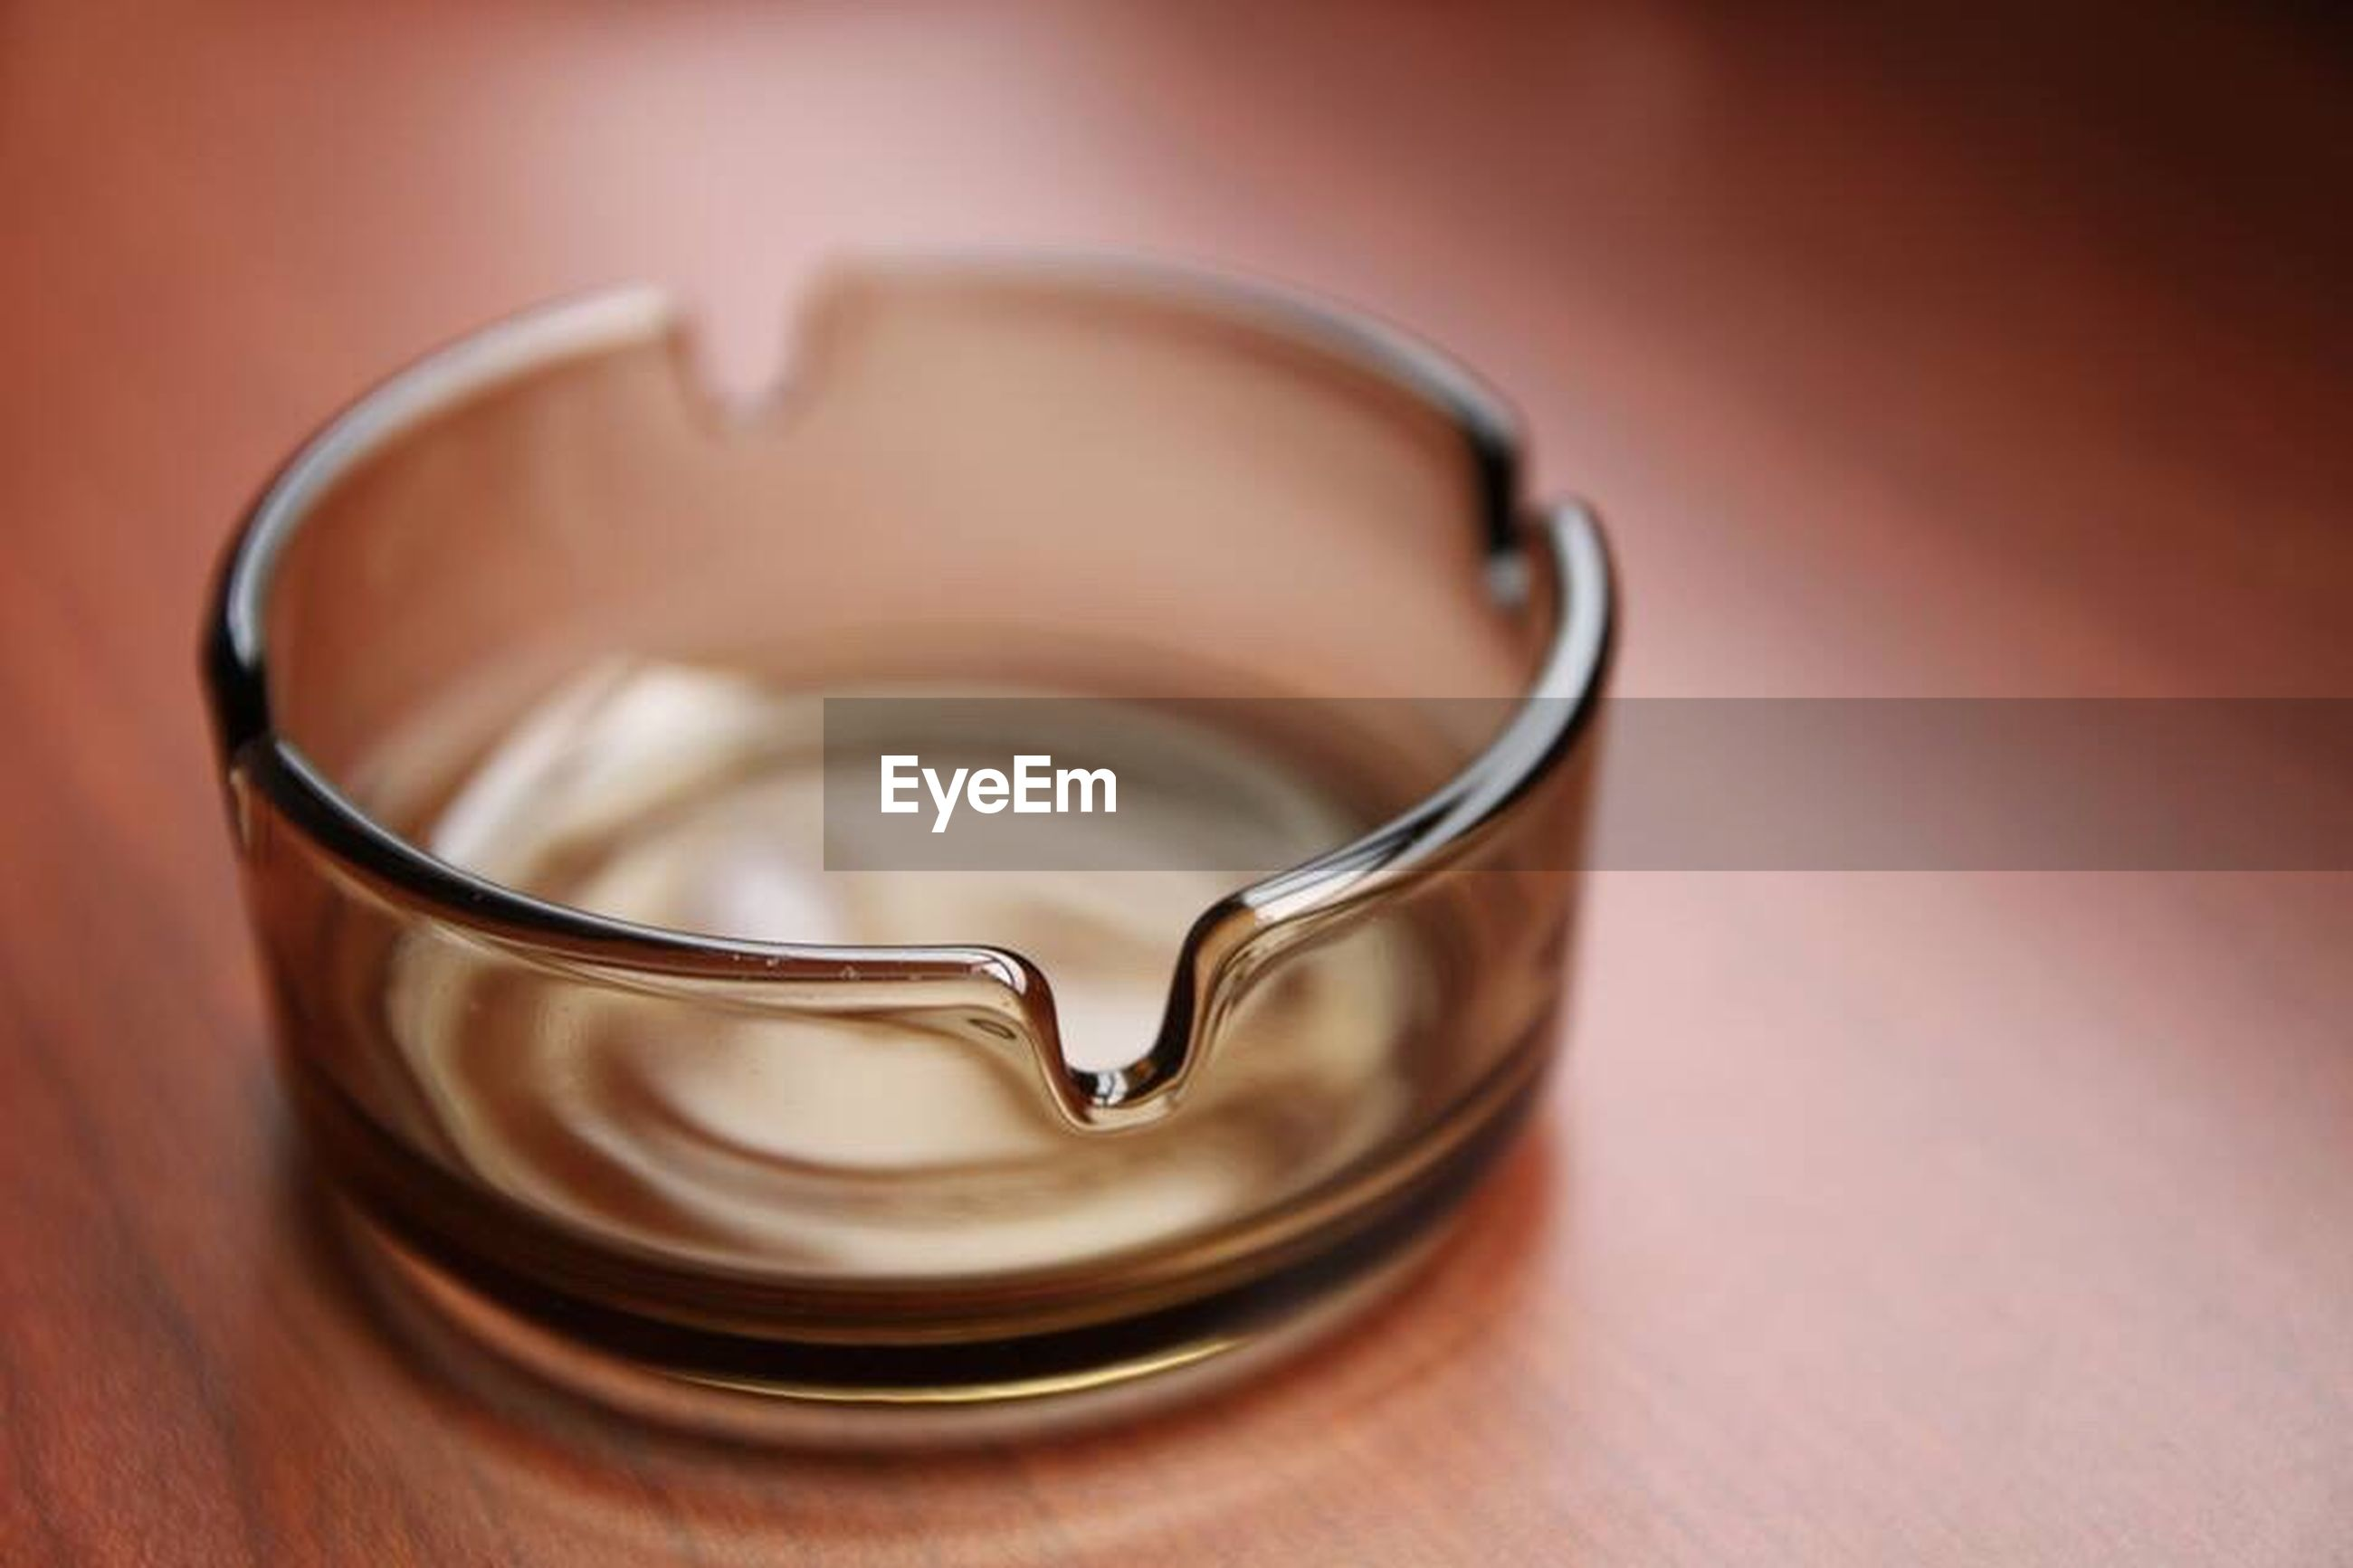 indoors, close-up, still life, table, single object, refreshment, drink, no people, high angle view, food and drink, home interior, focus on foreground, coffee cup, selective focus, simplicity, spoon, two objects, freshness, metal, container